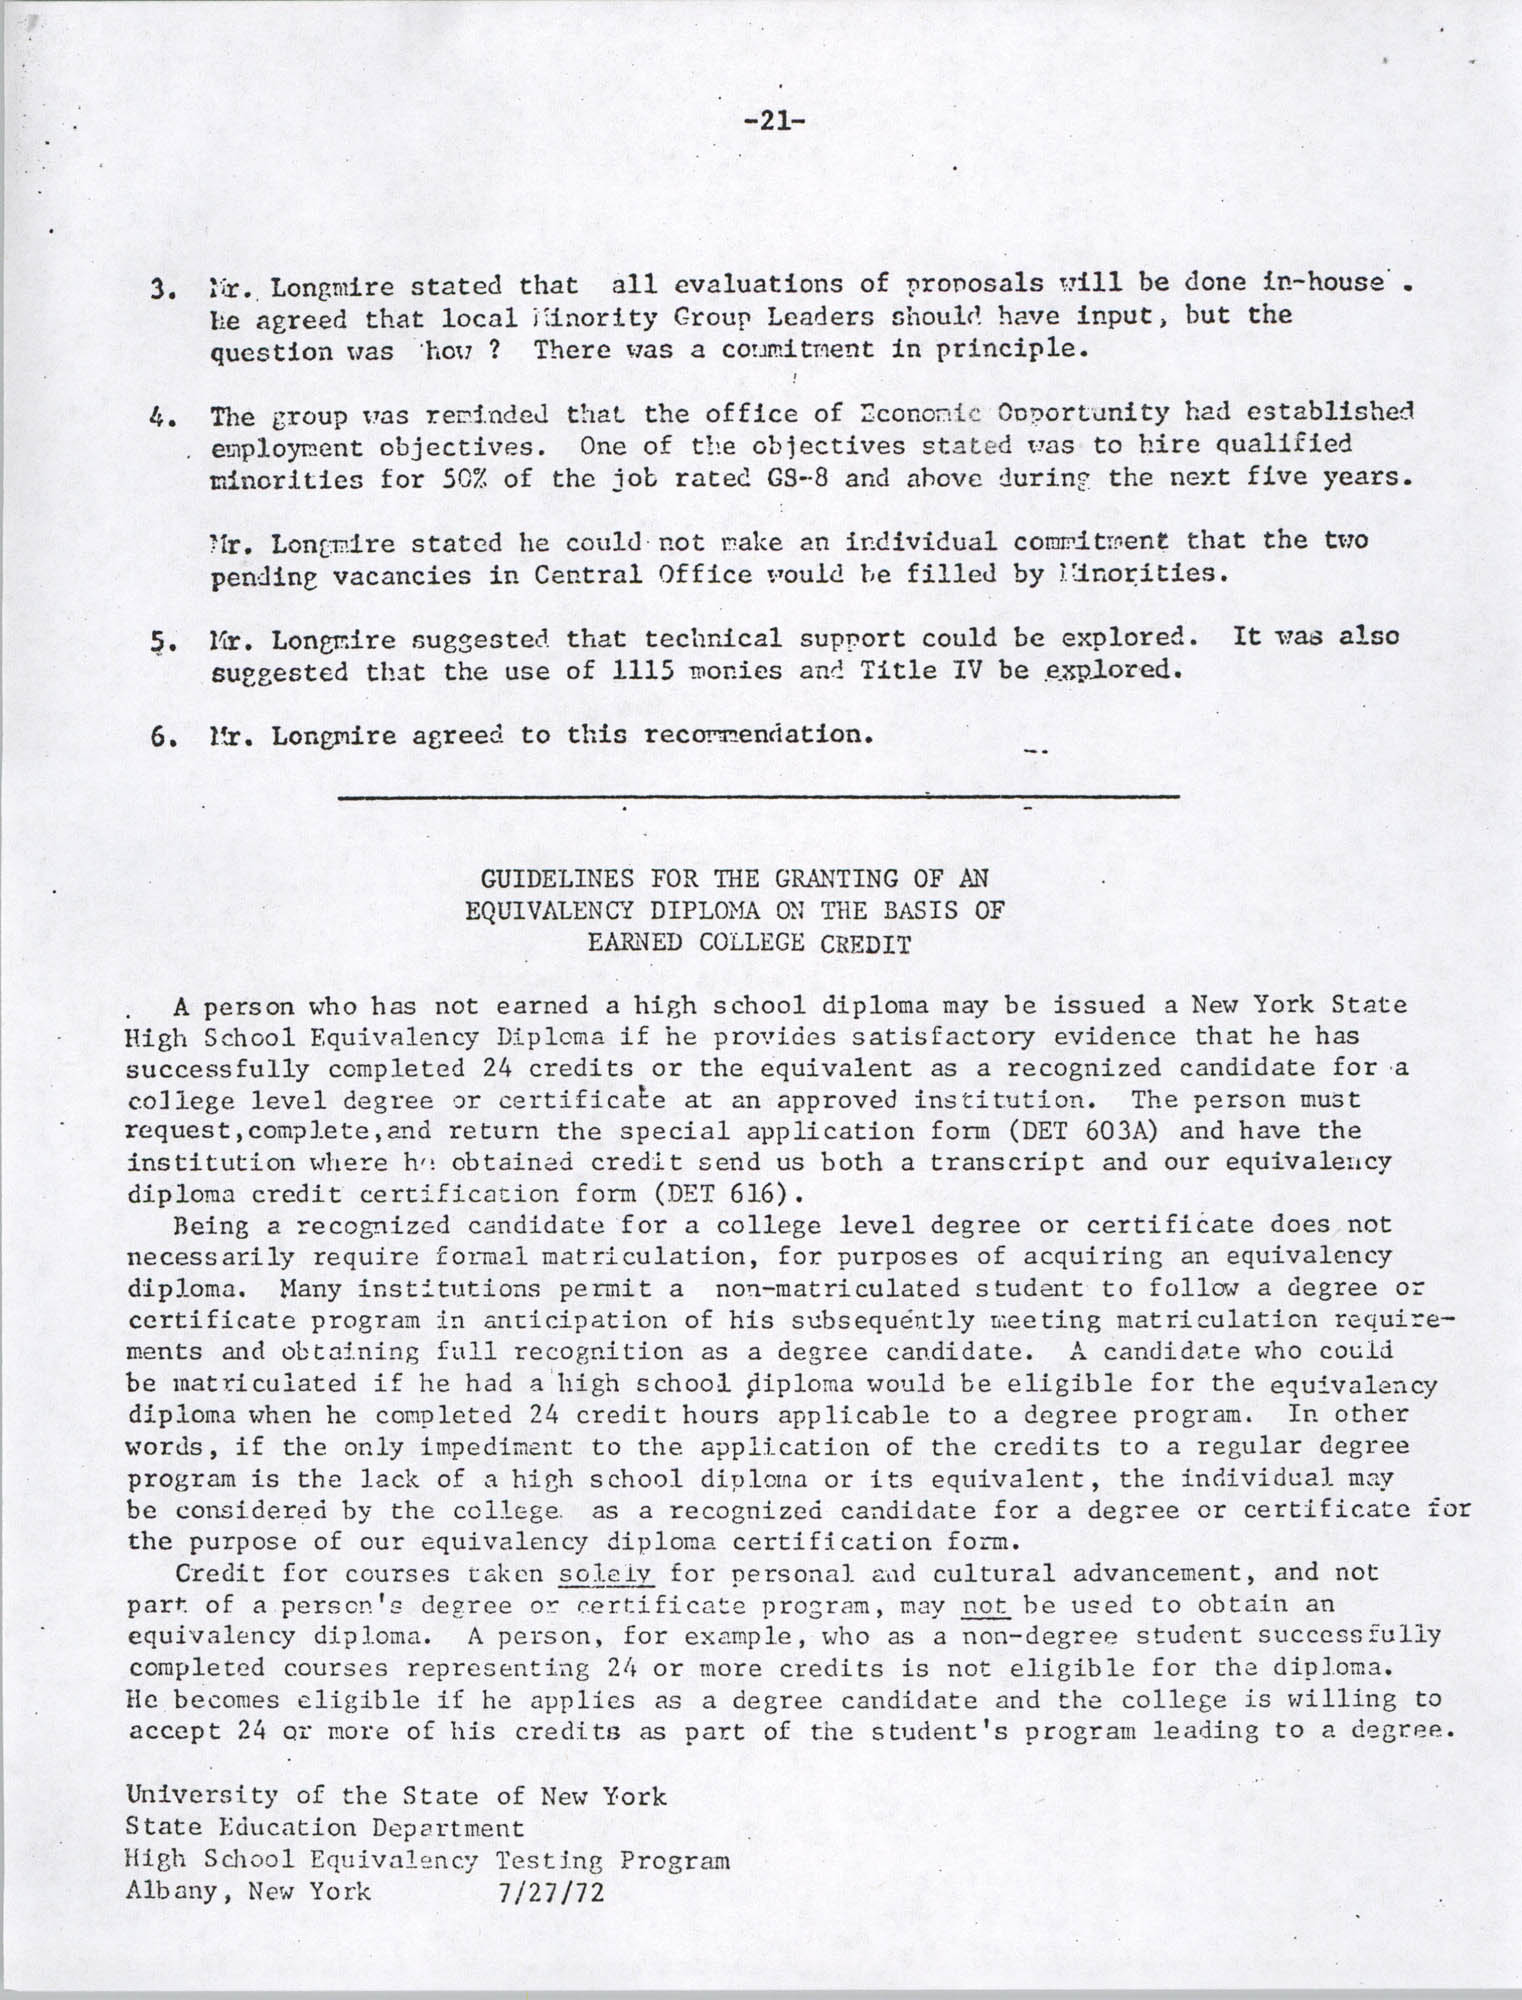 Black Educators Council for Human Services, Volume 1, Number 1, Page 21